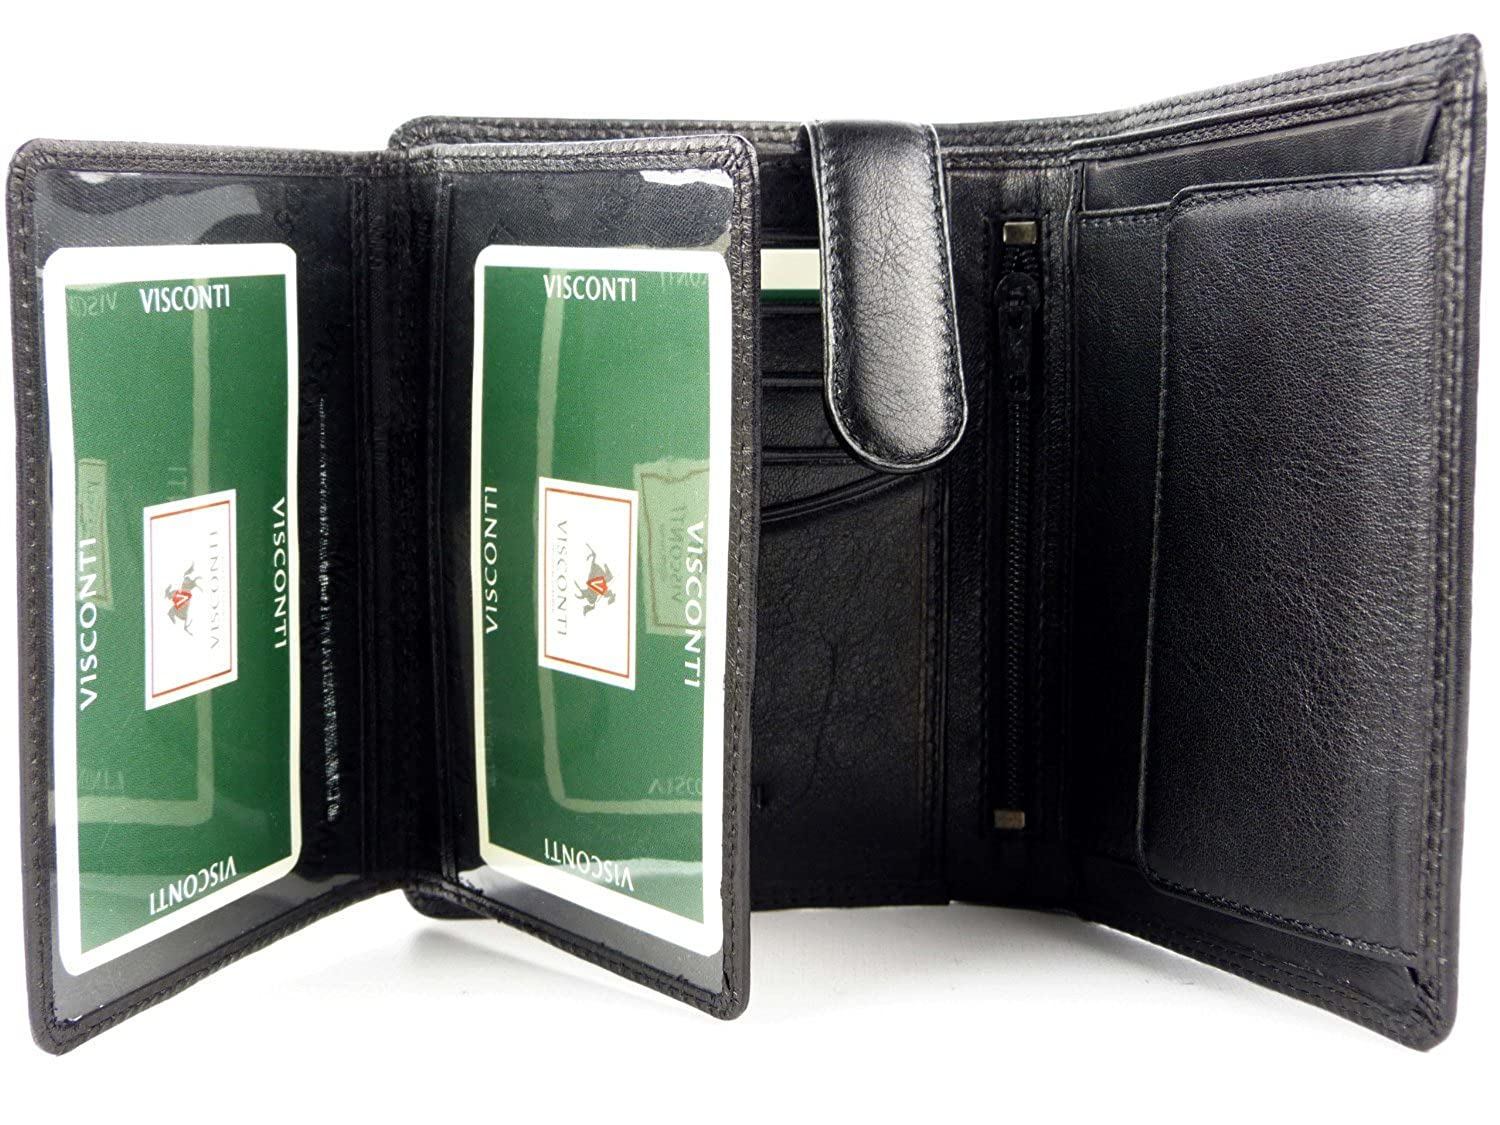 Visconti heritage-11 Soft Thin ID de fotos de piel (Quad Fold Wallets: Amazon.es: Ropa y accesorios